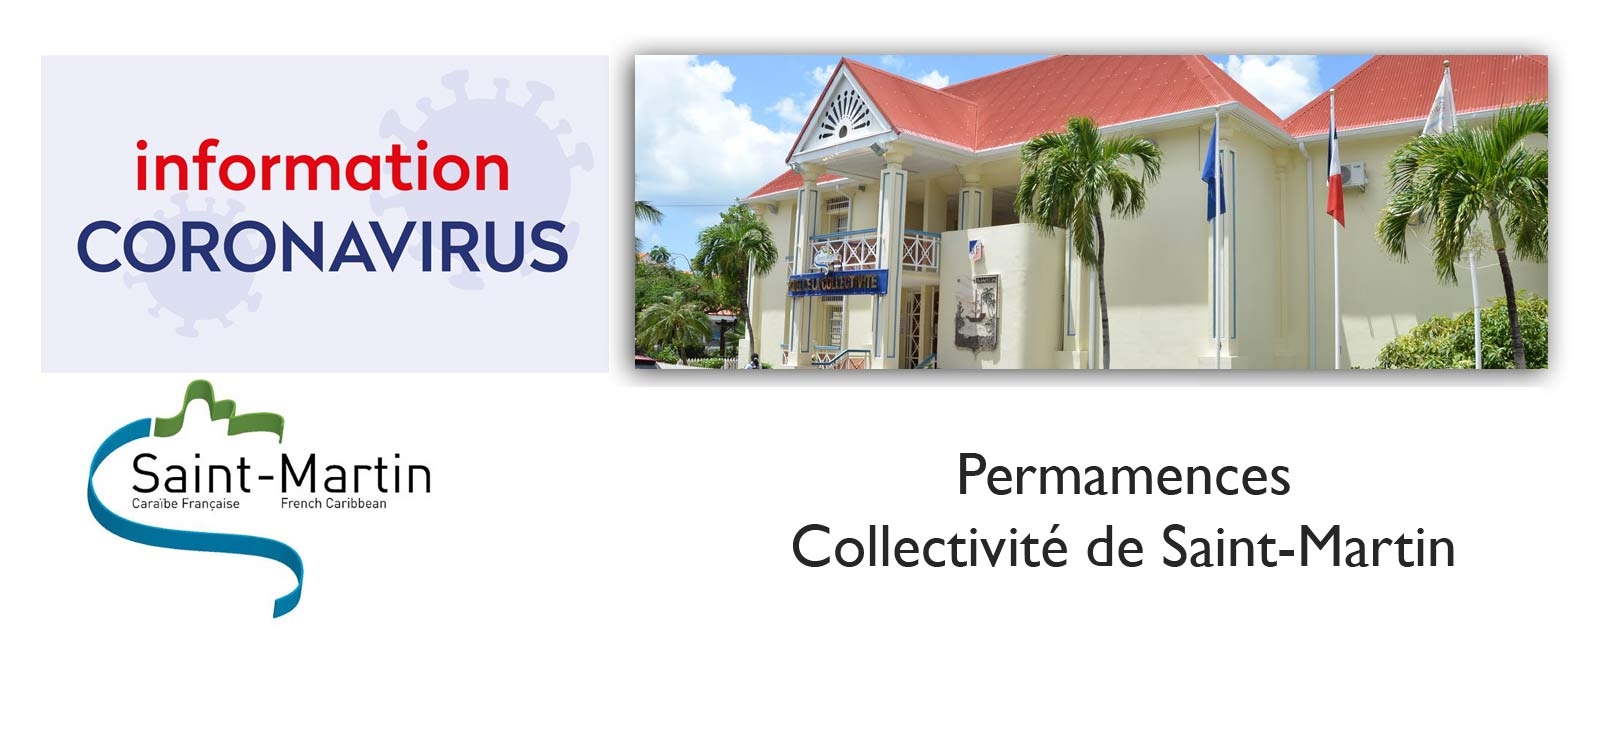 Permamences Collectivité de Saint-Martin